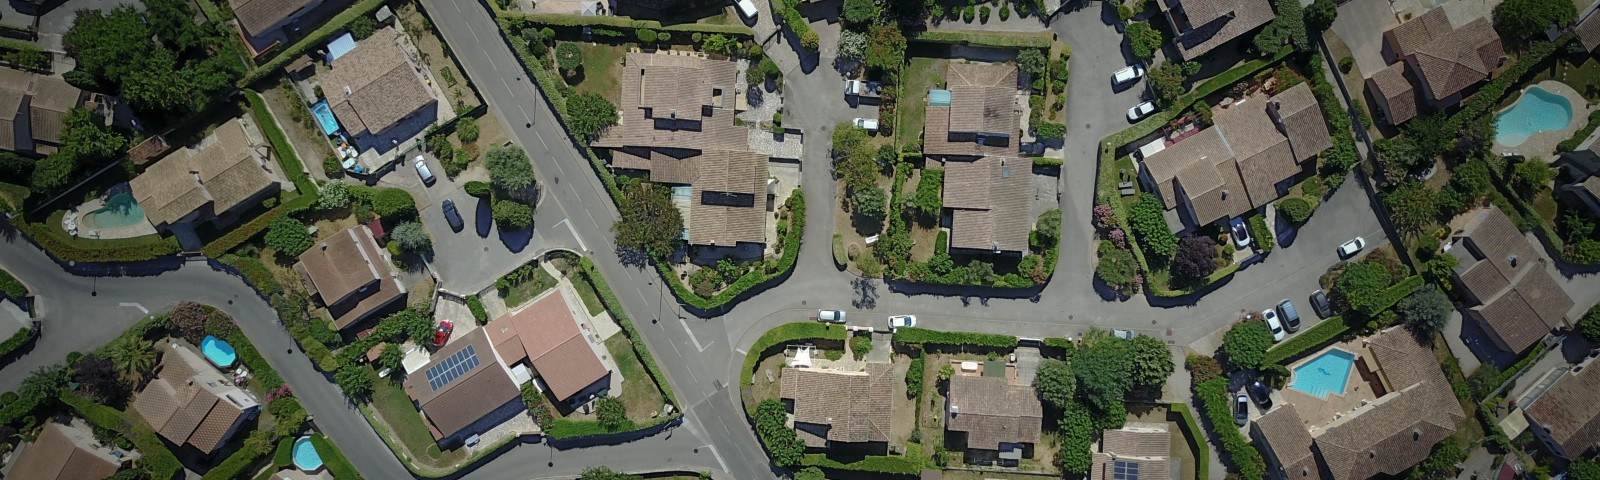 Aerial view of suburban neighborhood.